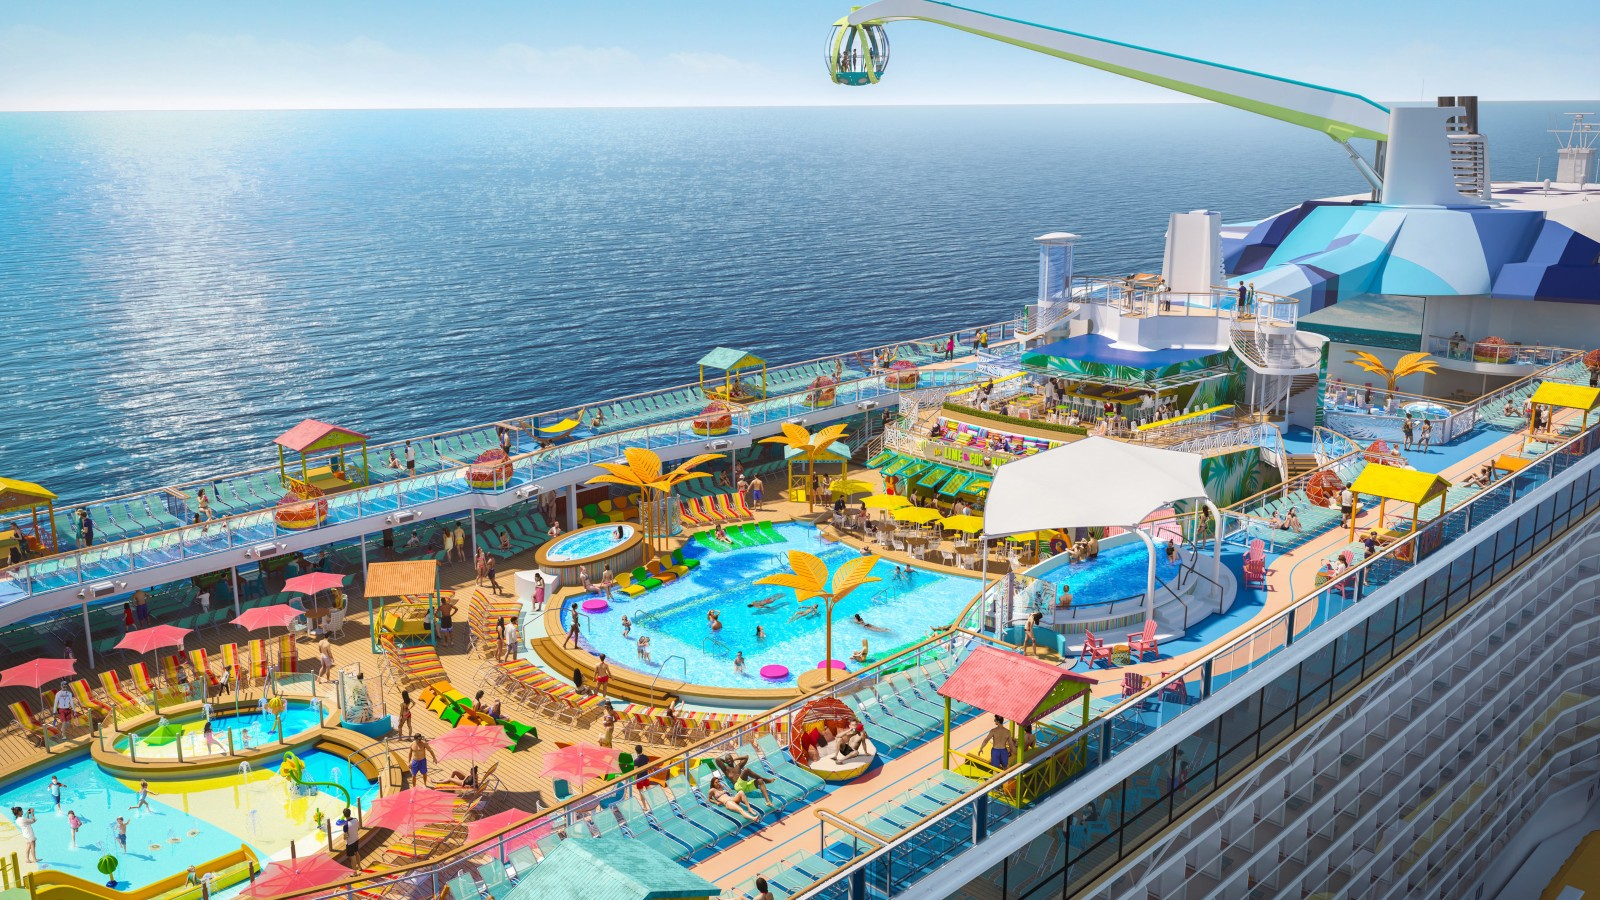 Cruise Controlled: Royal Caribbean Sets Voyages For Fully Vaccinated